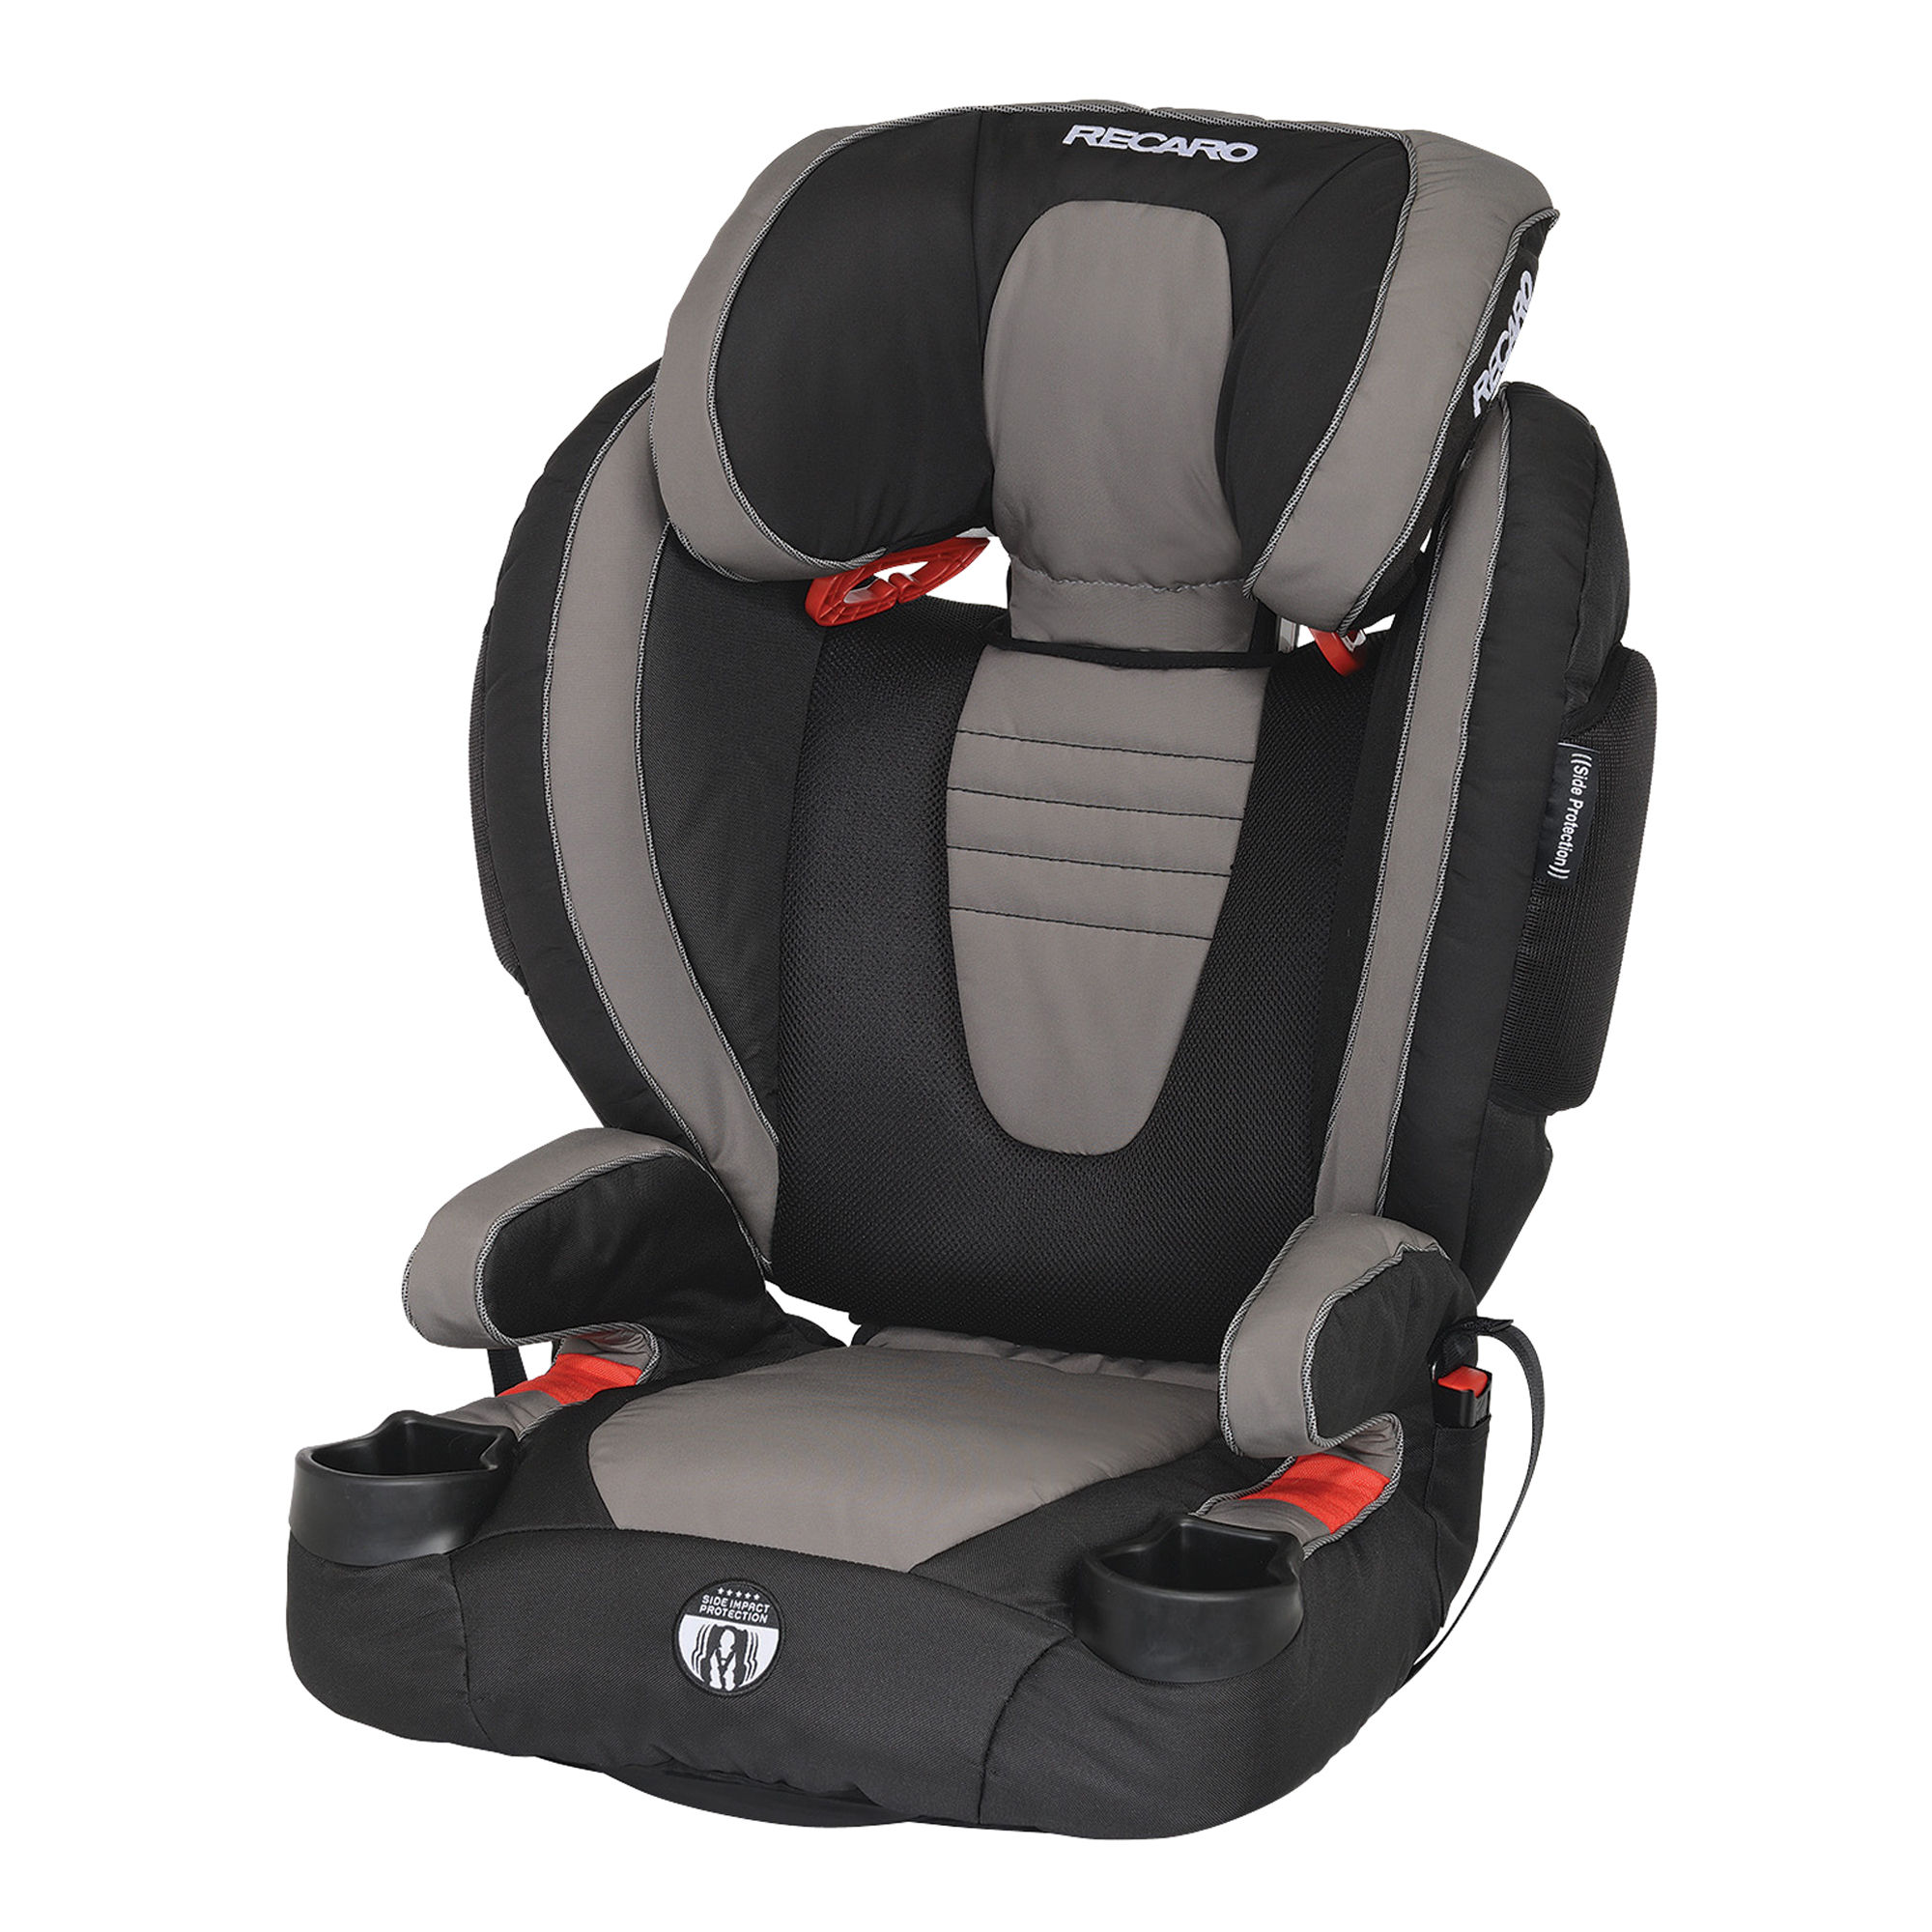 Recaro Performance High-Back Booster Car Seat - Knight